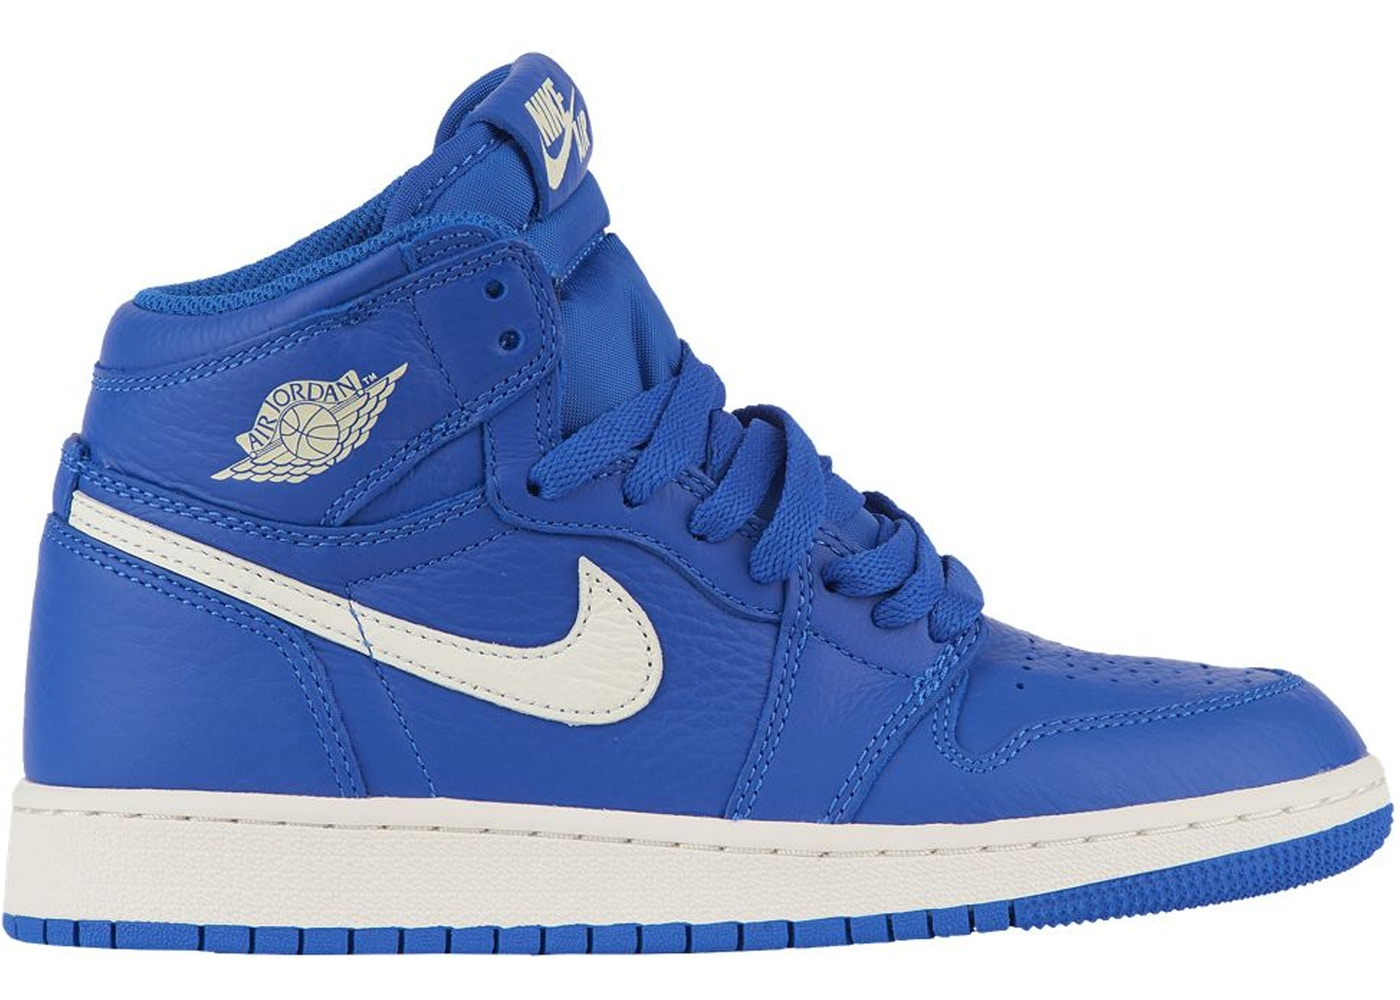 c3bc957b8ddf Jordan 1 Retro High Hyper Royal (GS) - 575441-401